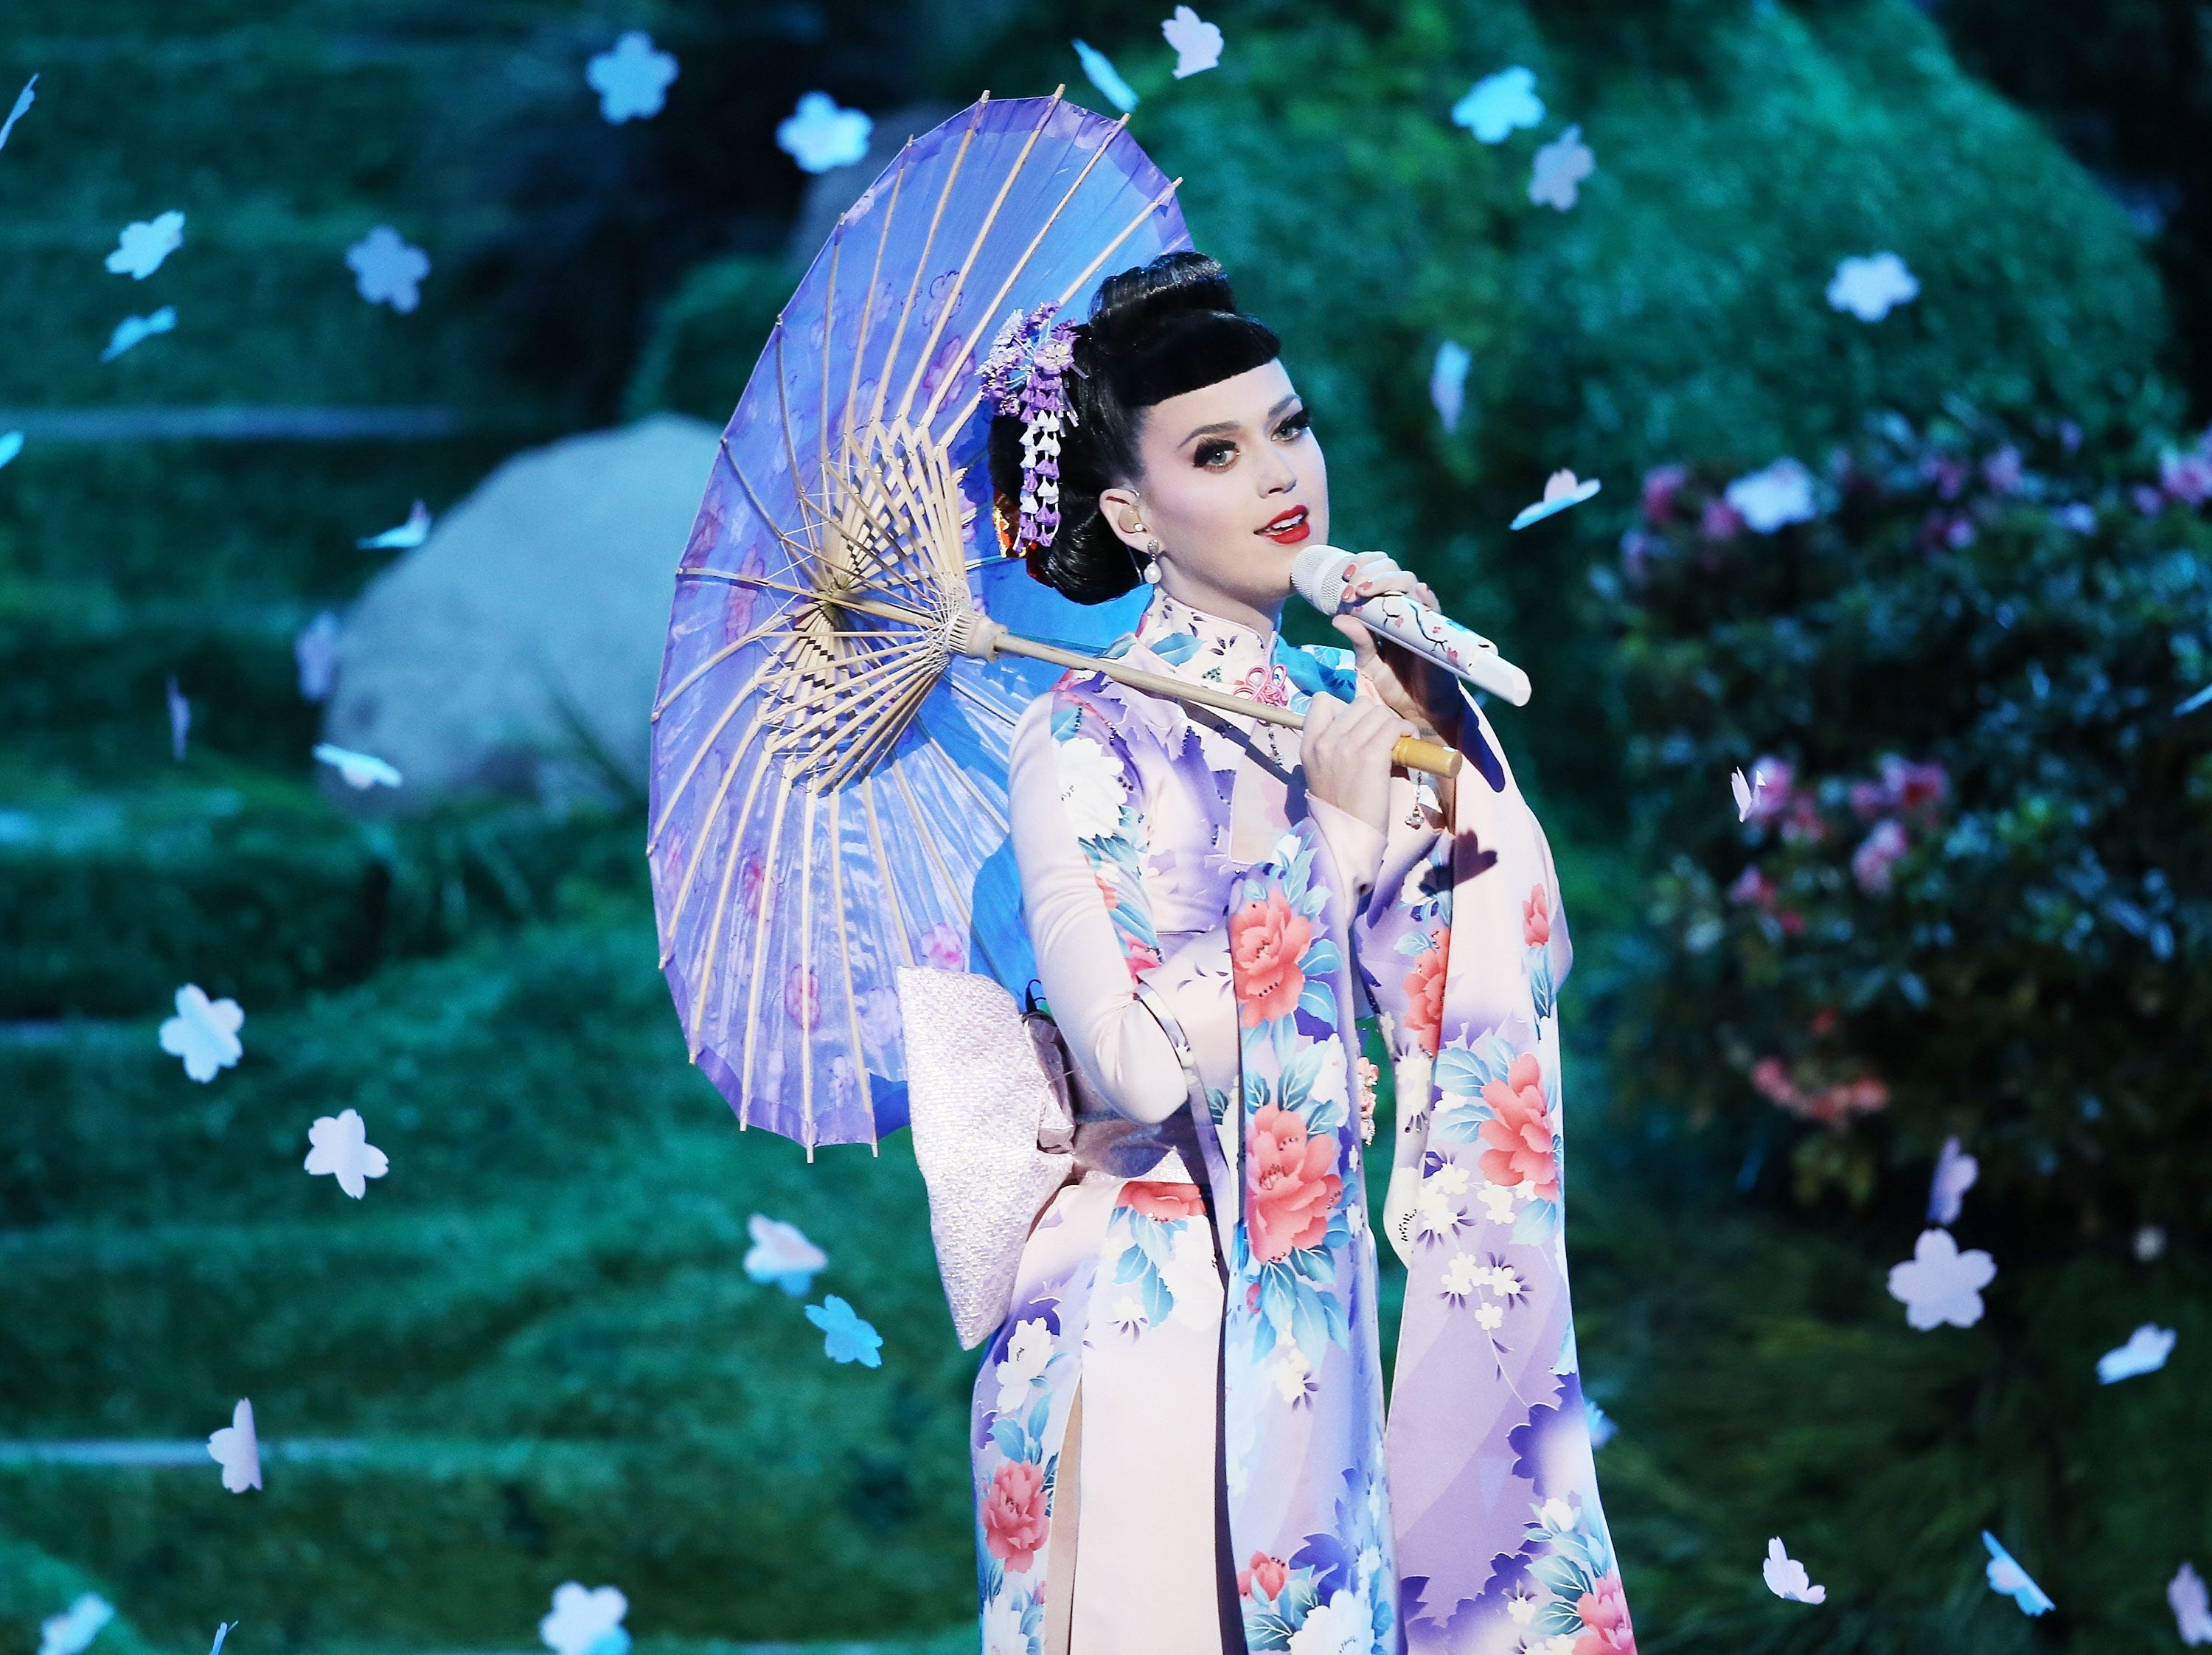 What's Up With Katy Perry's Mildy Racist and Offensive Performances TheseDays